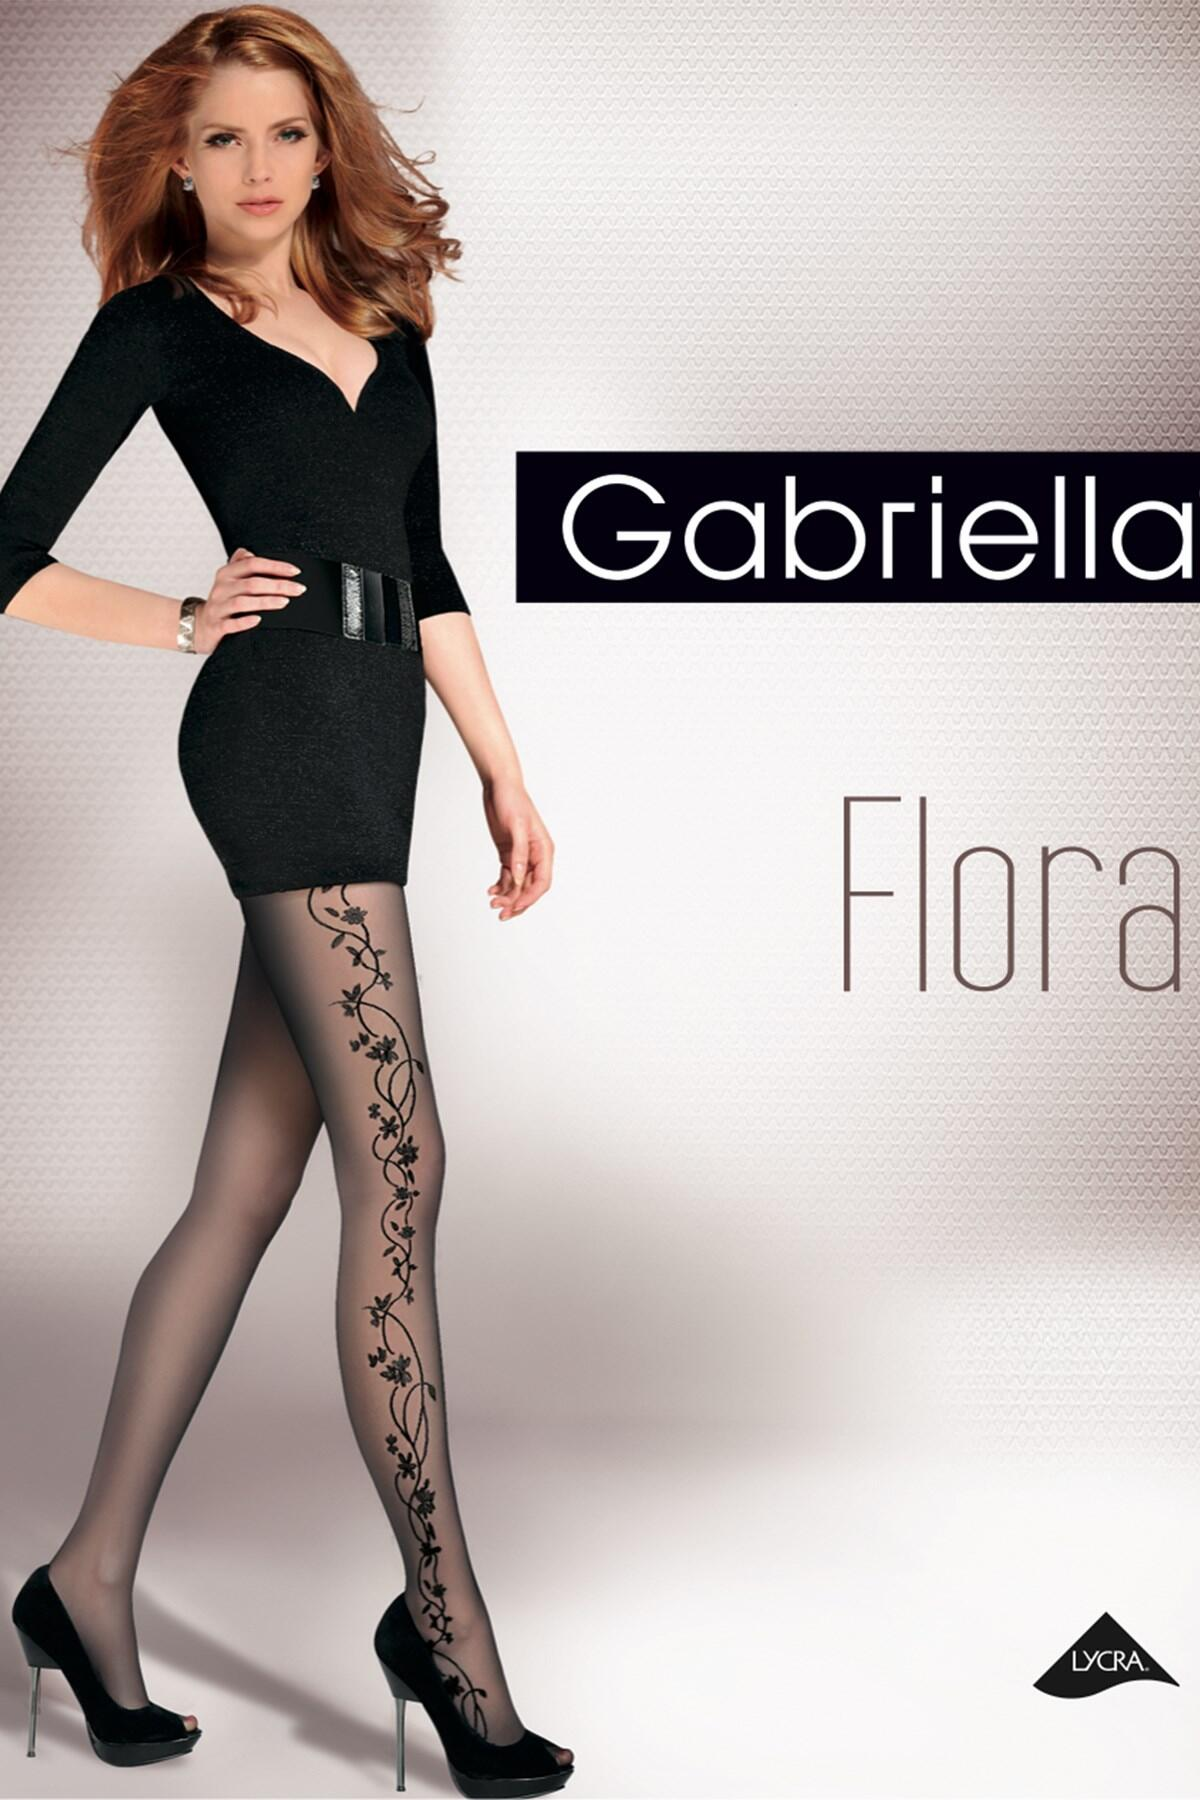 Gabriella Flora Fashion 20 Den Lycra - Black